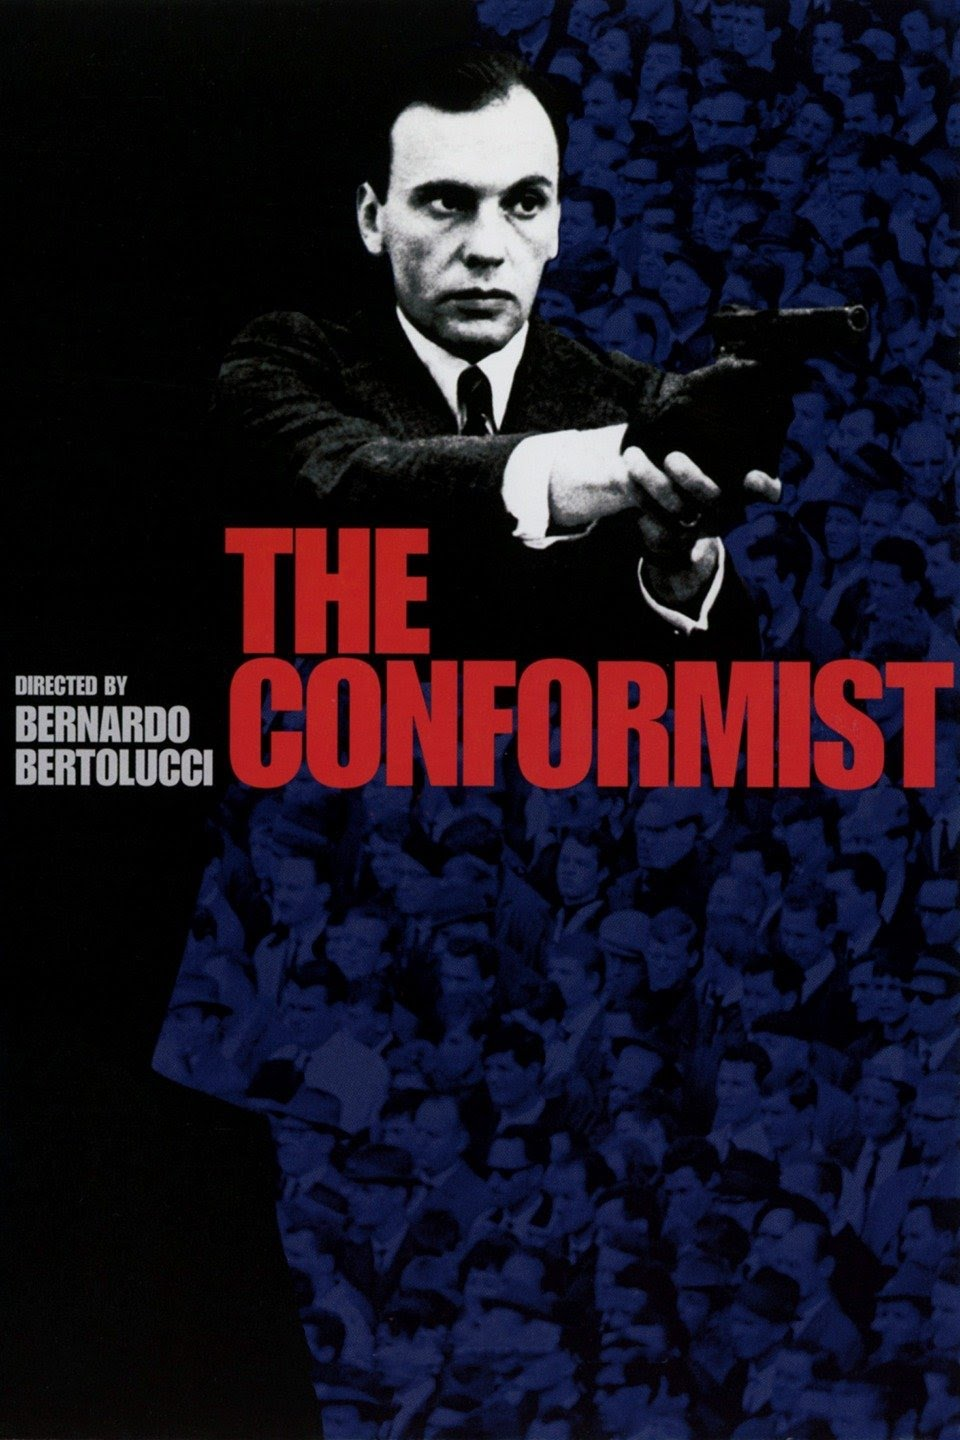 Image of The Conformist film cover